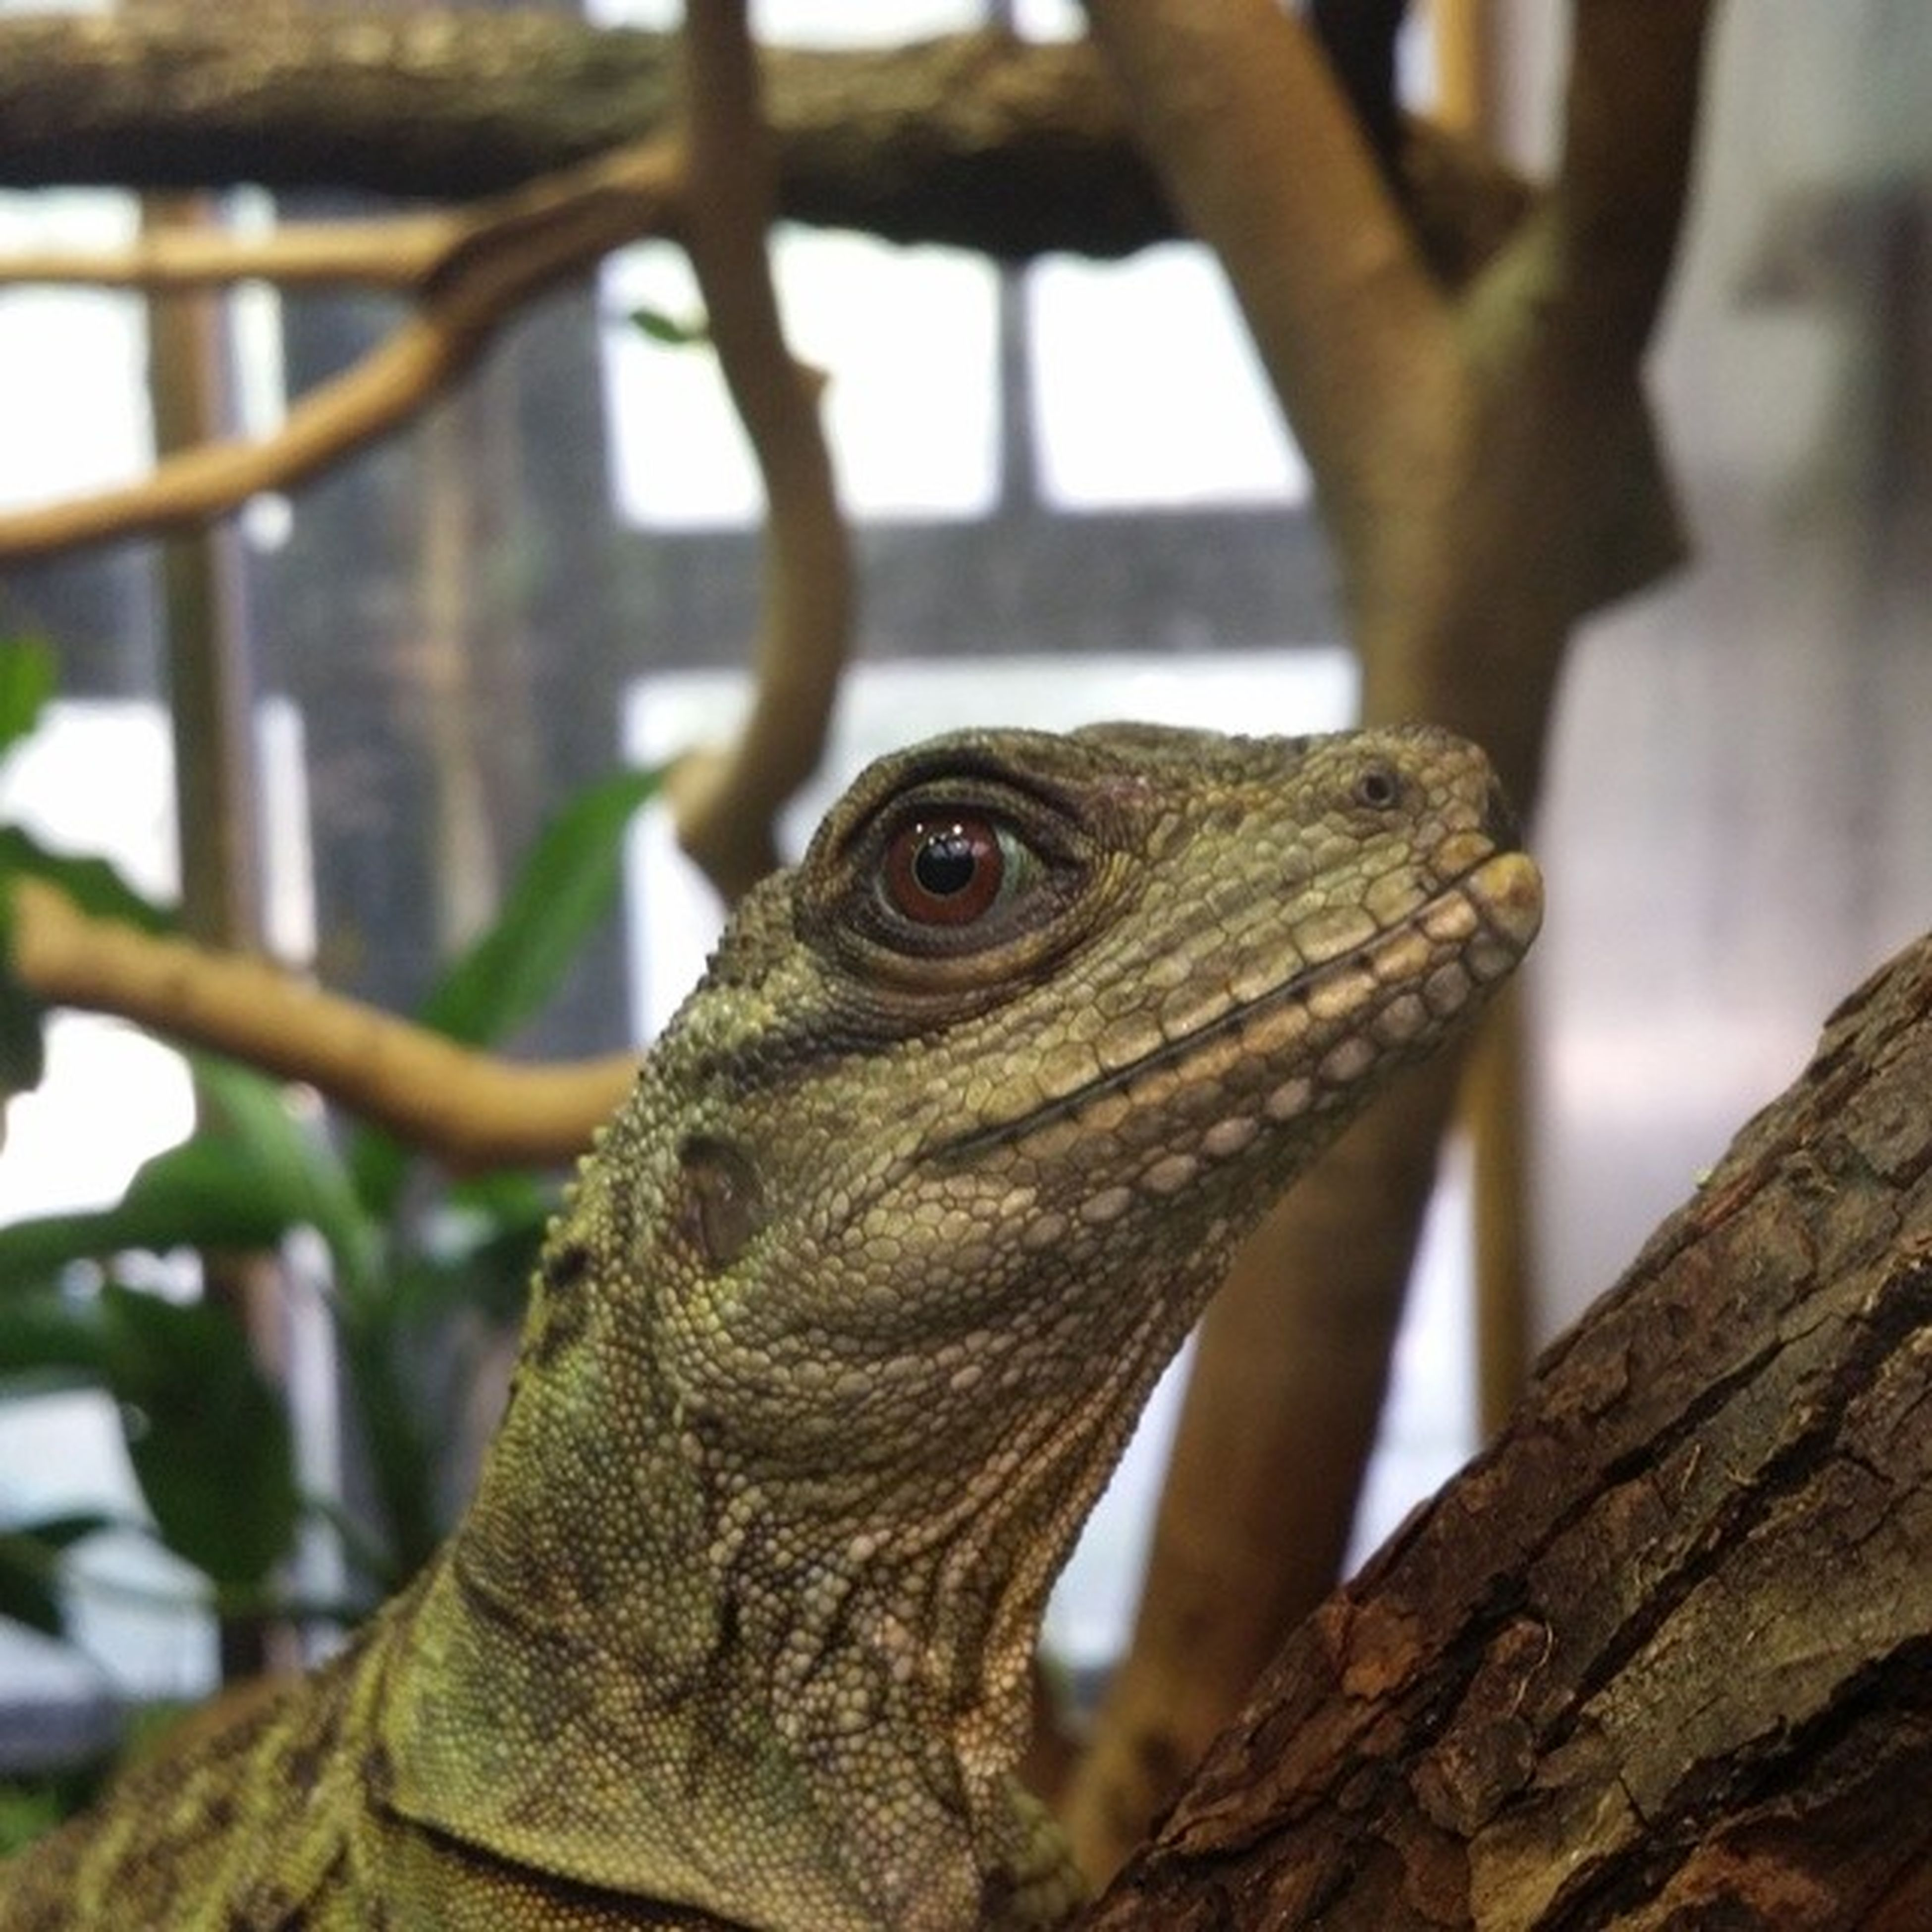 animal themes, one animal, animals in the wild, wildlife, focus on foreground, close-up, lizard, branch, animal head, bird, reptile, tree, perching, day, nature, selective focus, outdoors, side view, part of, zoology